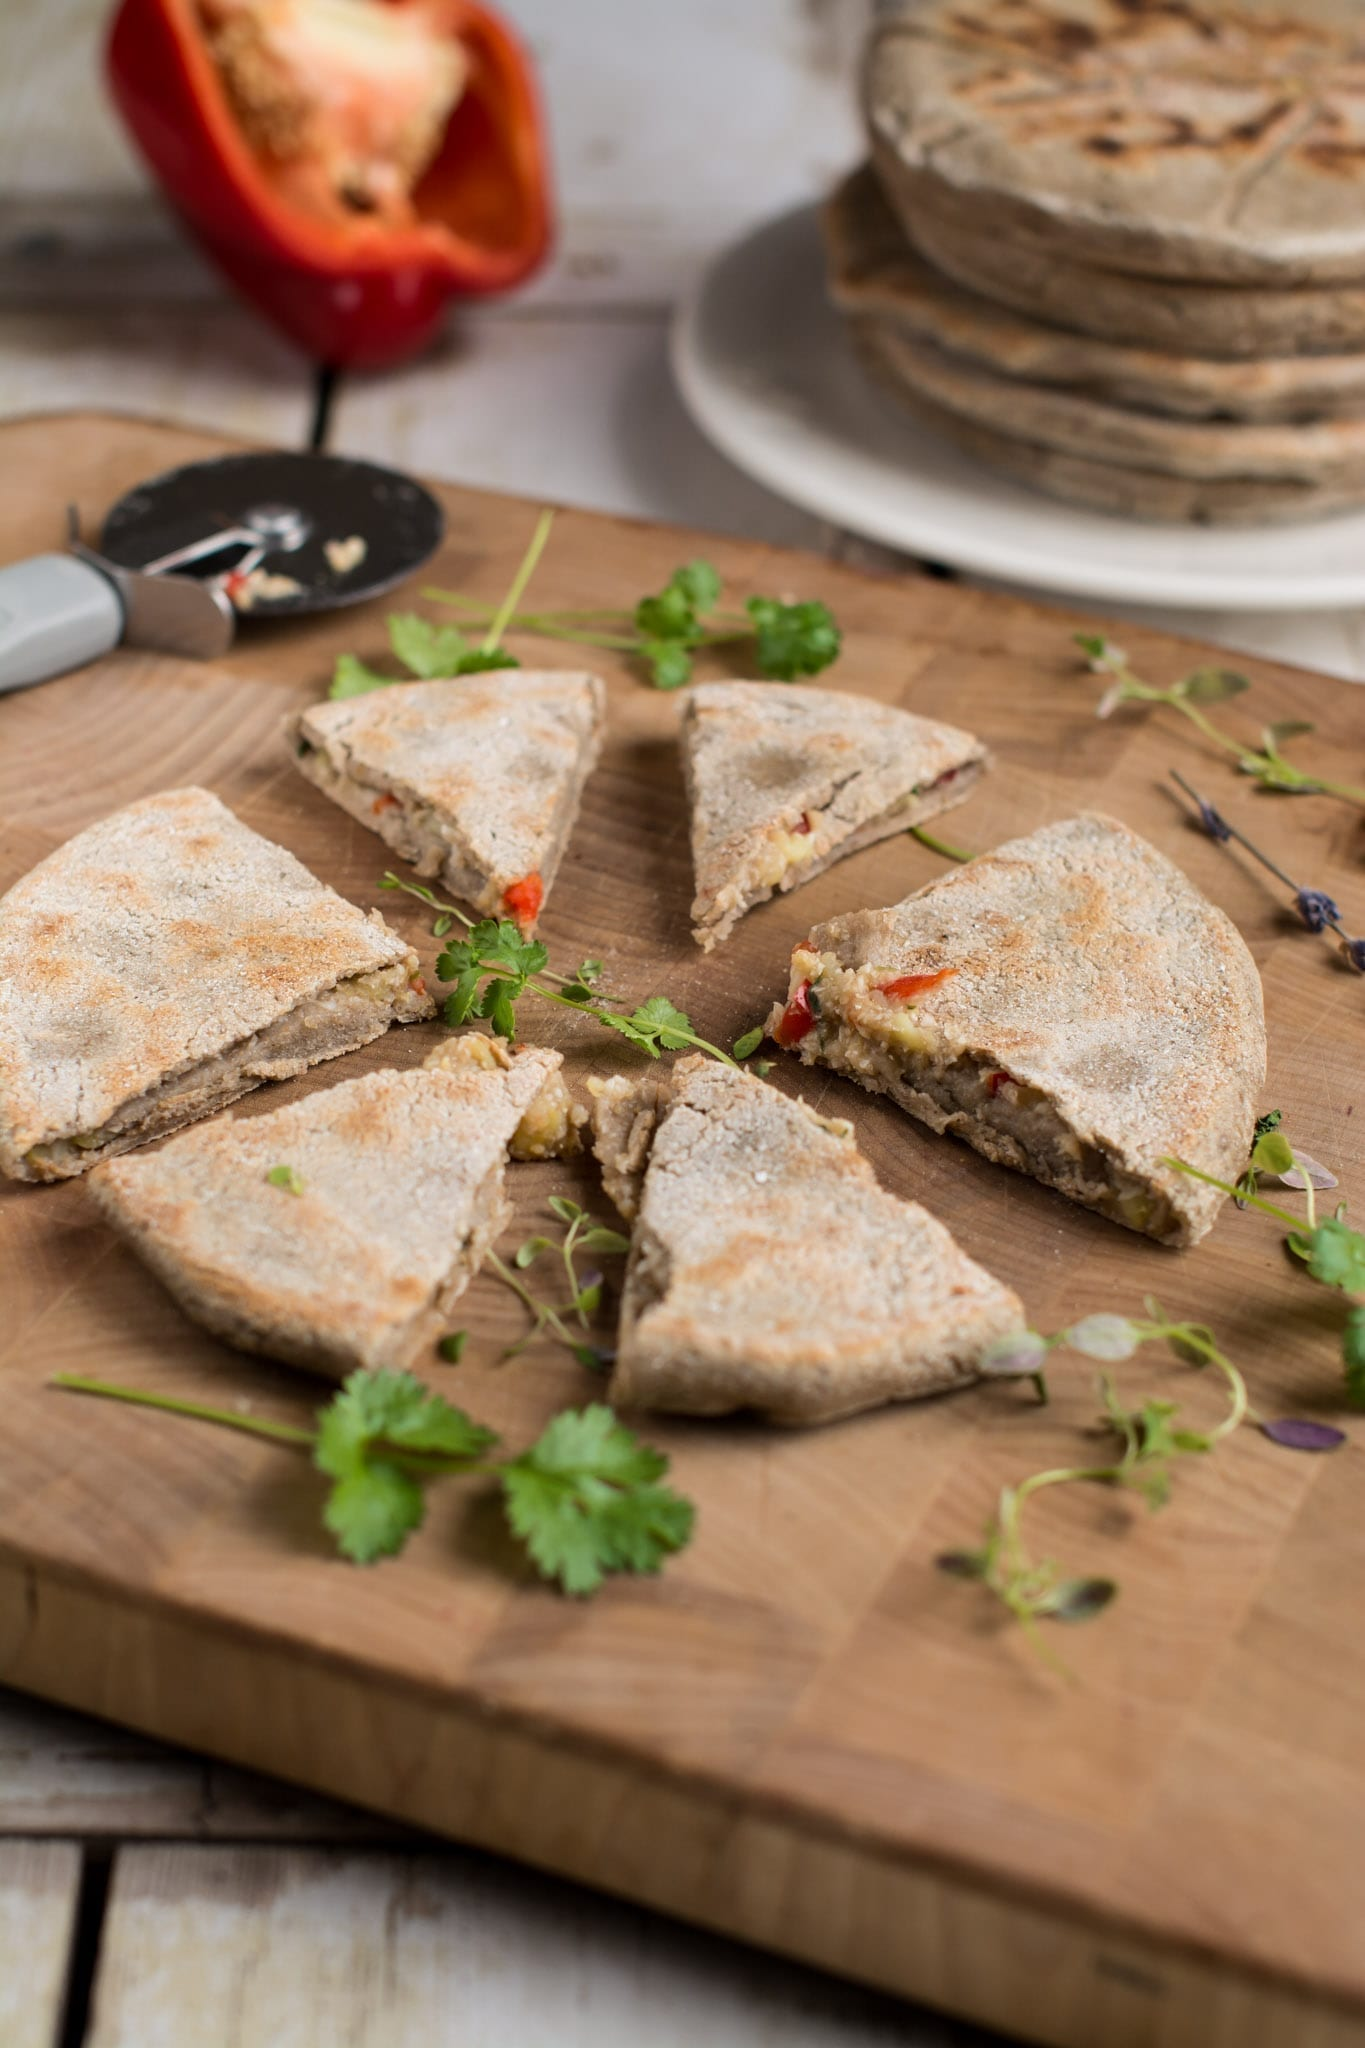 Gluten-free stuffed flatbread paratha with cauliflower-potato filling